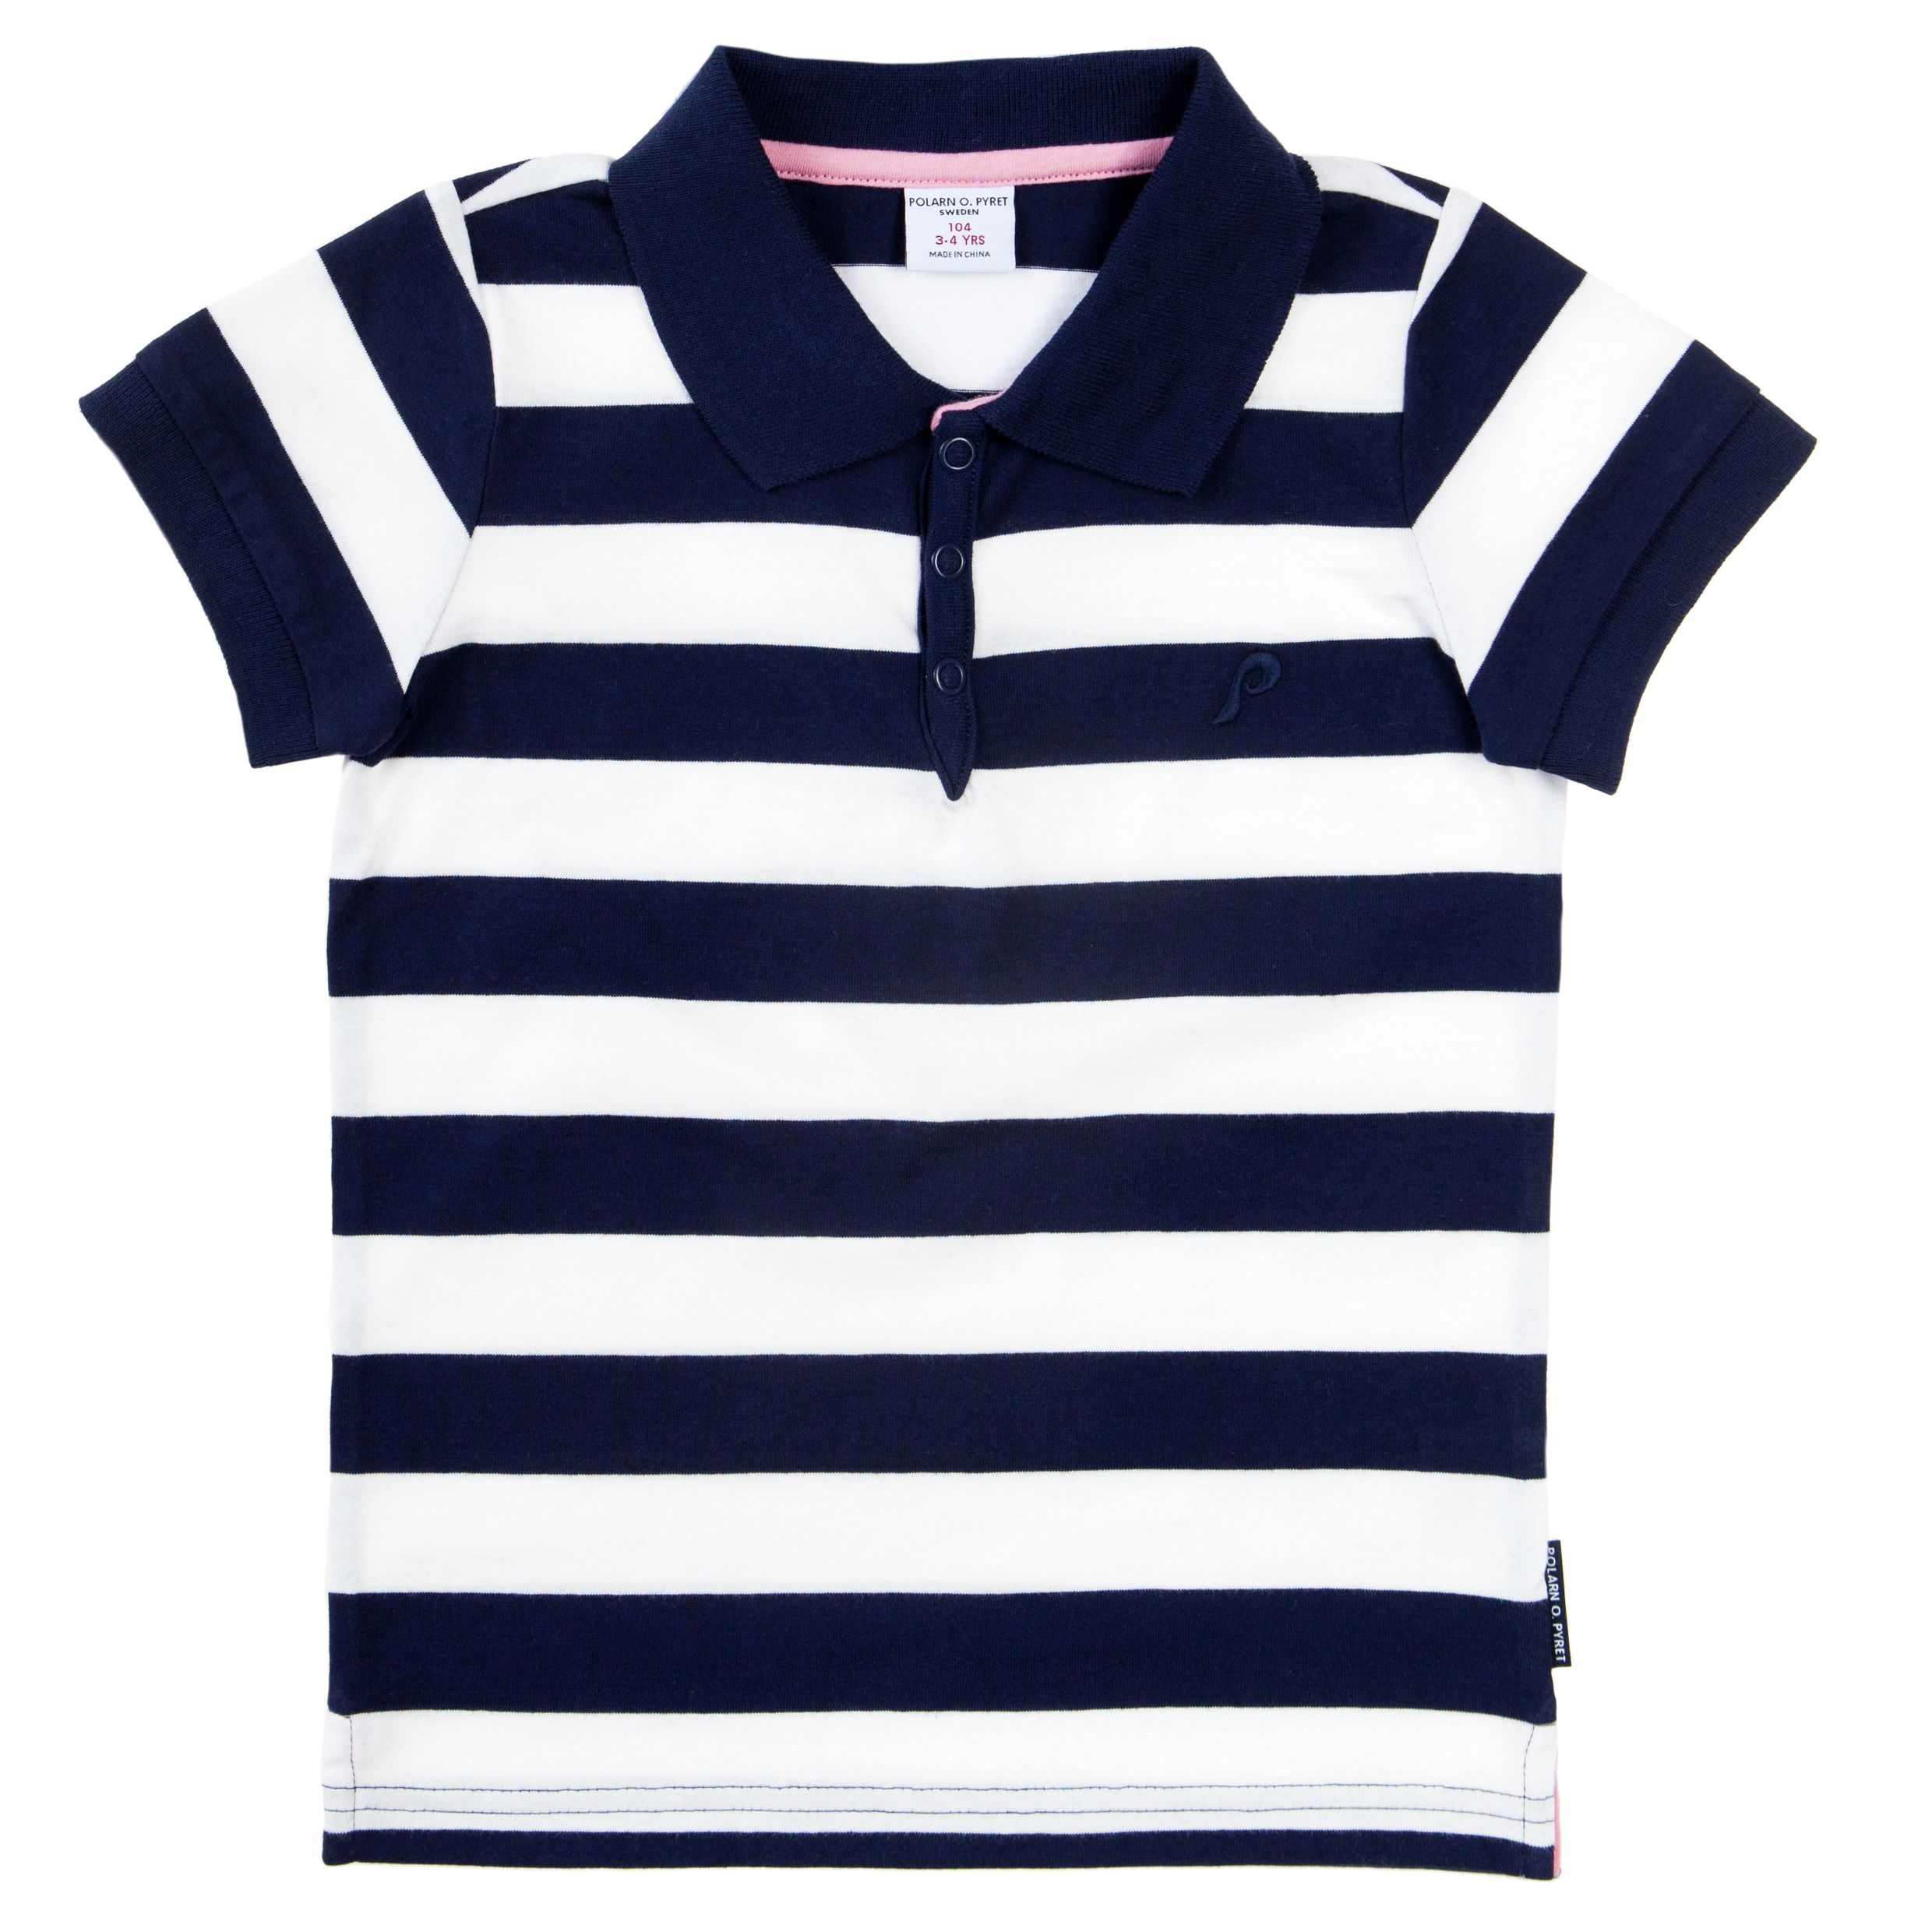 Kids striped polo shirt